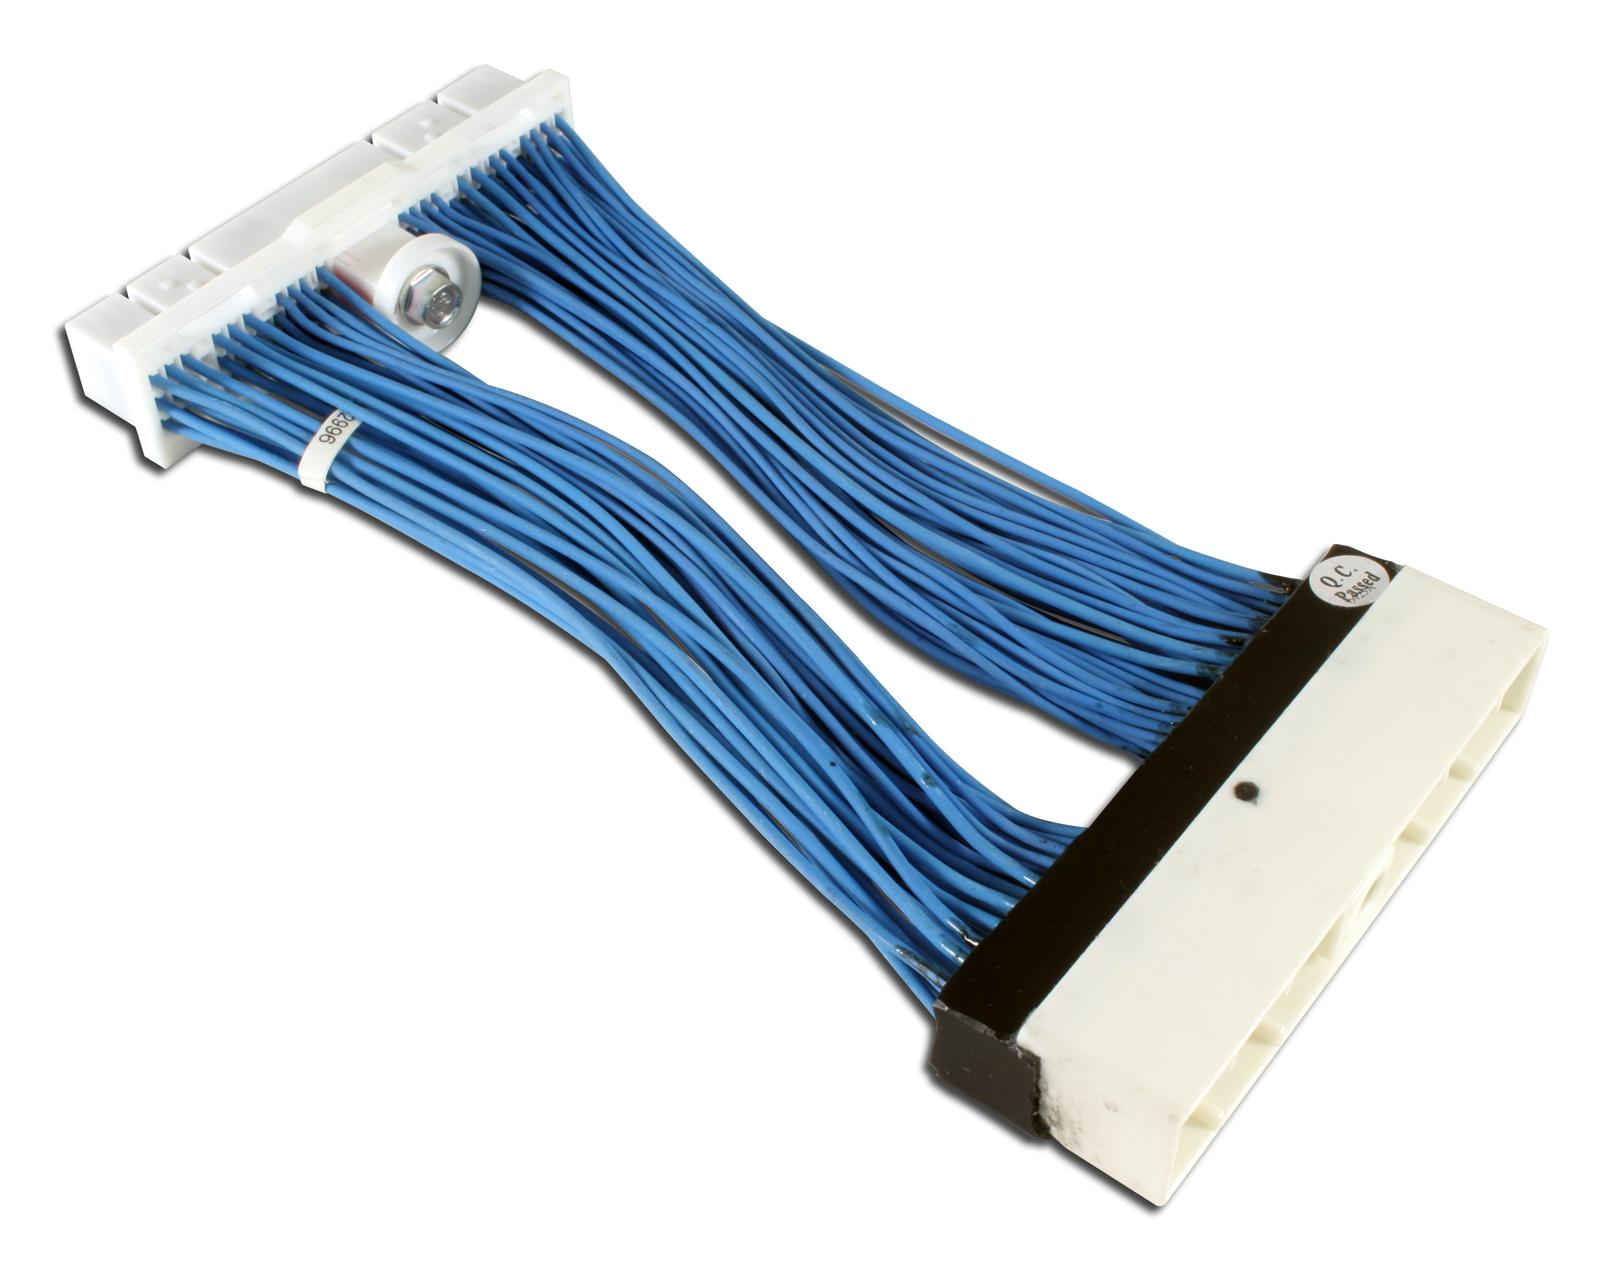 Aem Electronics Ecu Patch Extension Harnesses 30 2996 Free Wiring Harness Construction Shipping On Orders Over 99 At Summit Racing